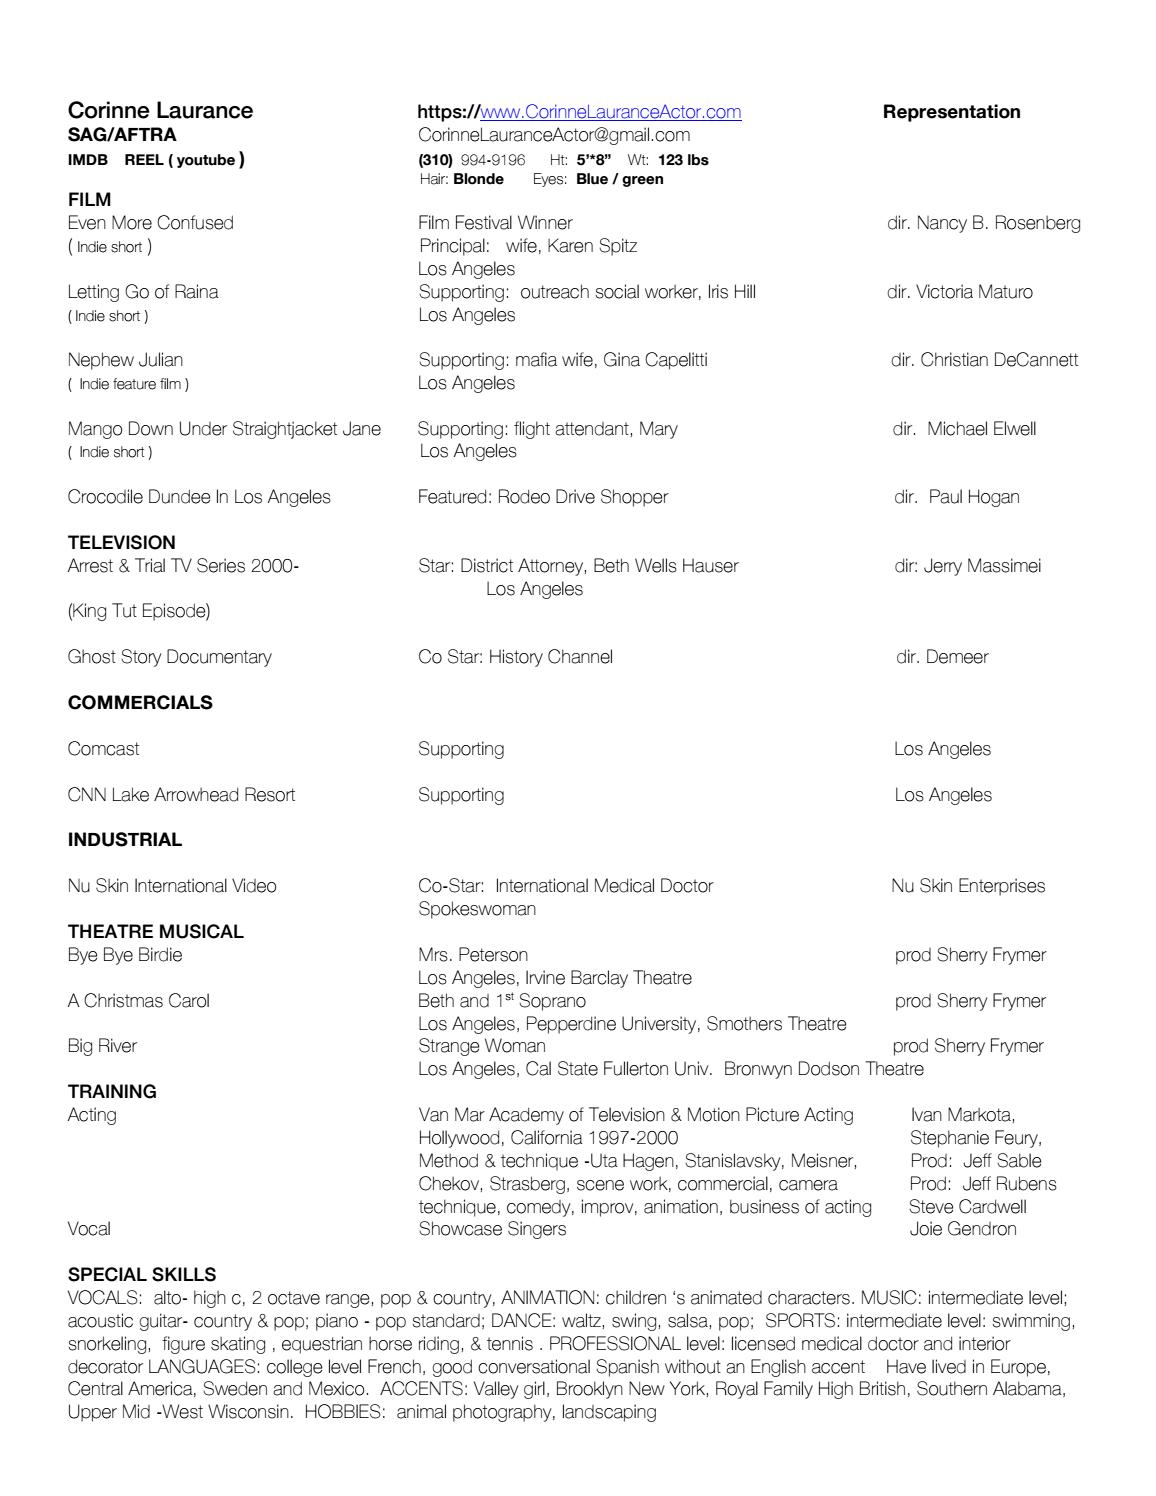 Resume PDF by CorinneLauranceActor - issuu